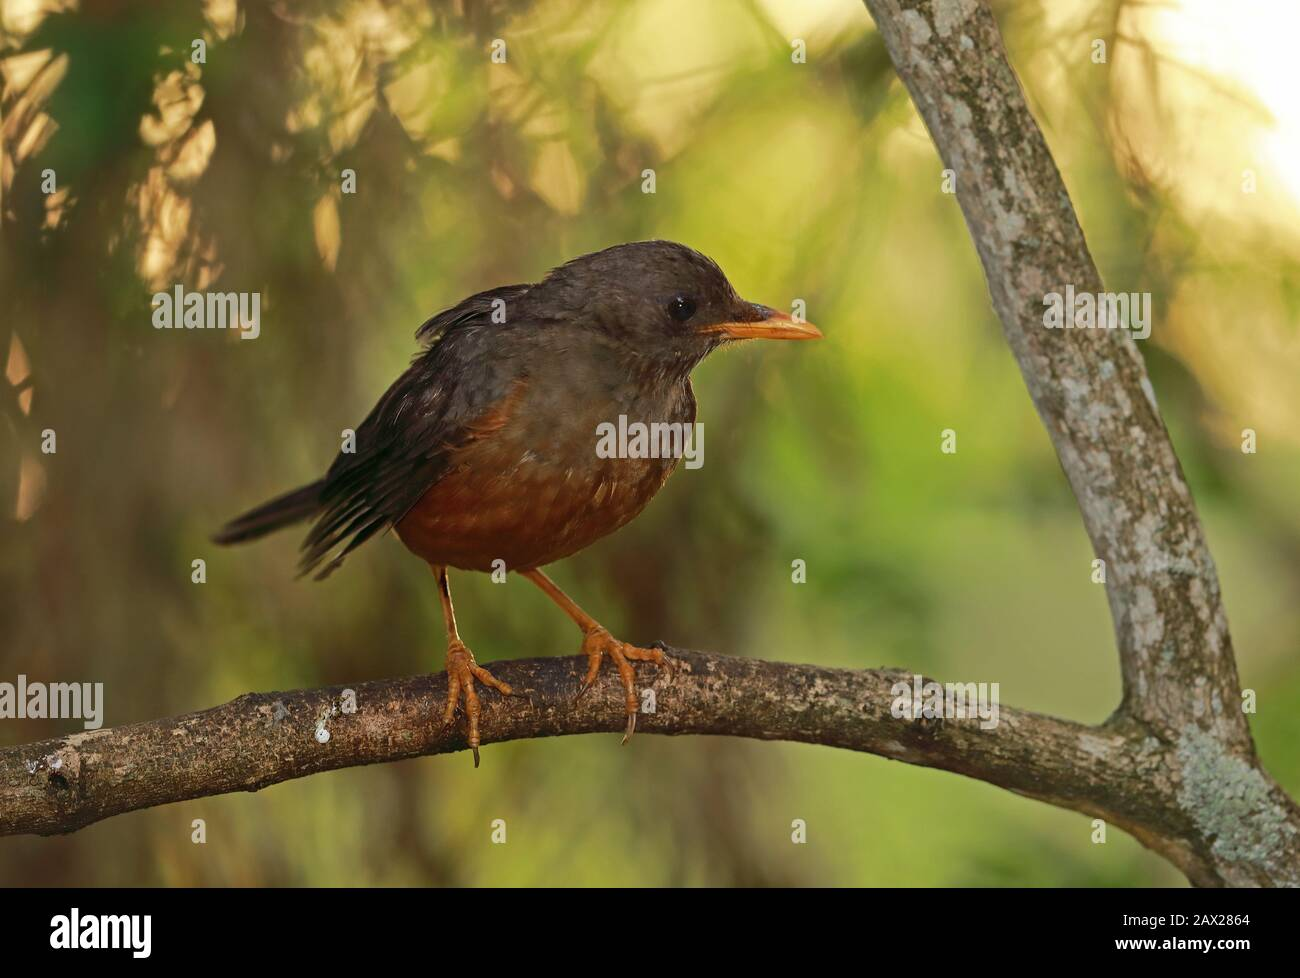 Olive Thrush (Turdus olivaceus) adult perched on branch  Wilderness, South Africa               November Stock Photo